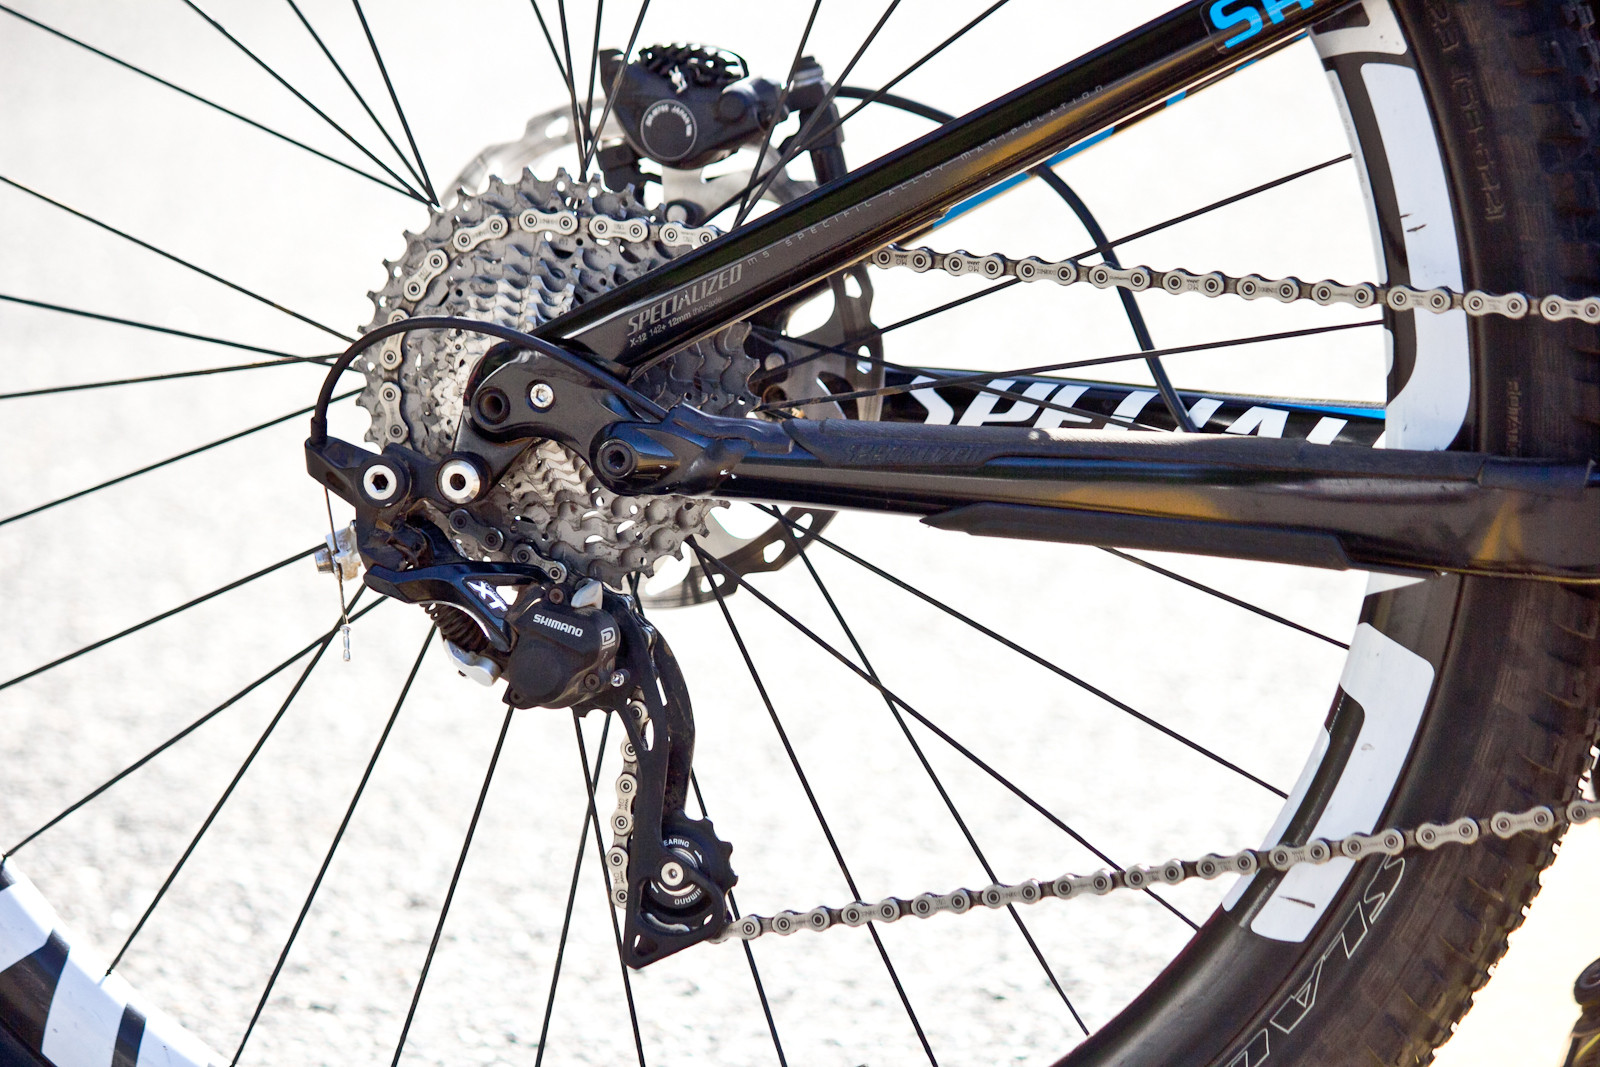 Shimano XT Rear Derailleur on Cody Kelley's Stumpy EVO 29 - Pro Bike Check: Cody Kelley's Specialized Stumpjumper FSR EVO 29 - Mountain Biking Pictures - Vital MTB